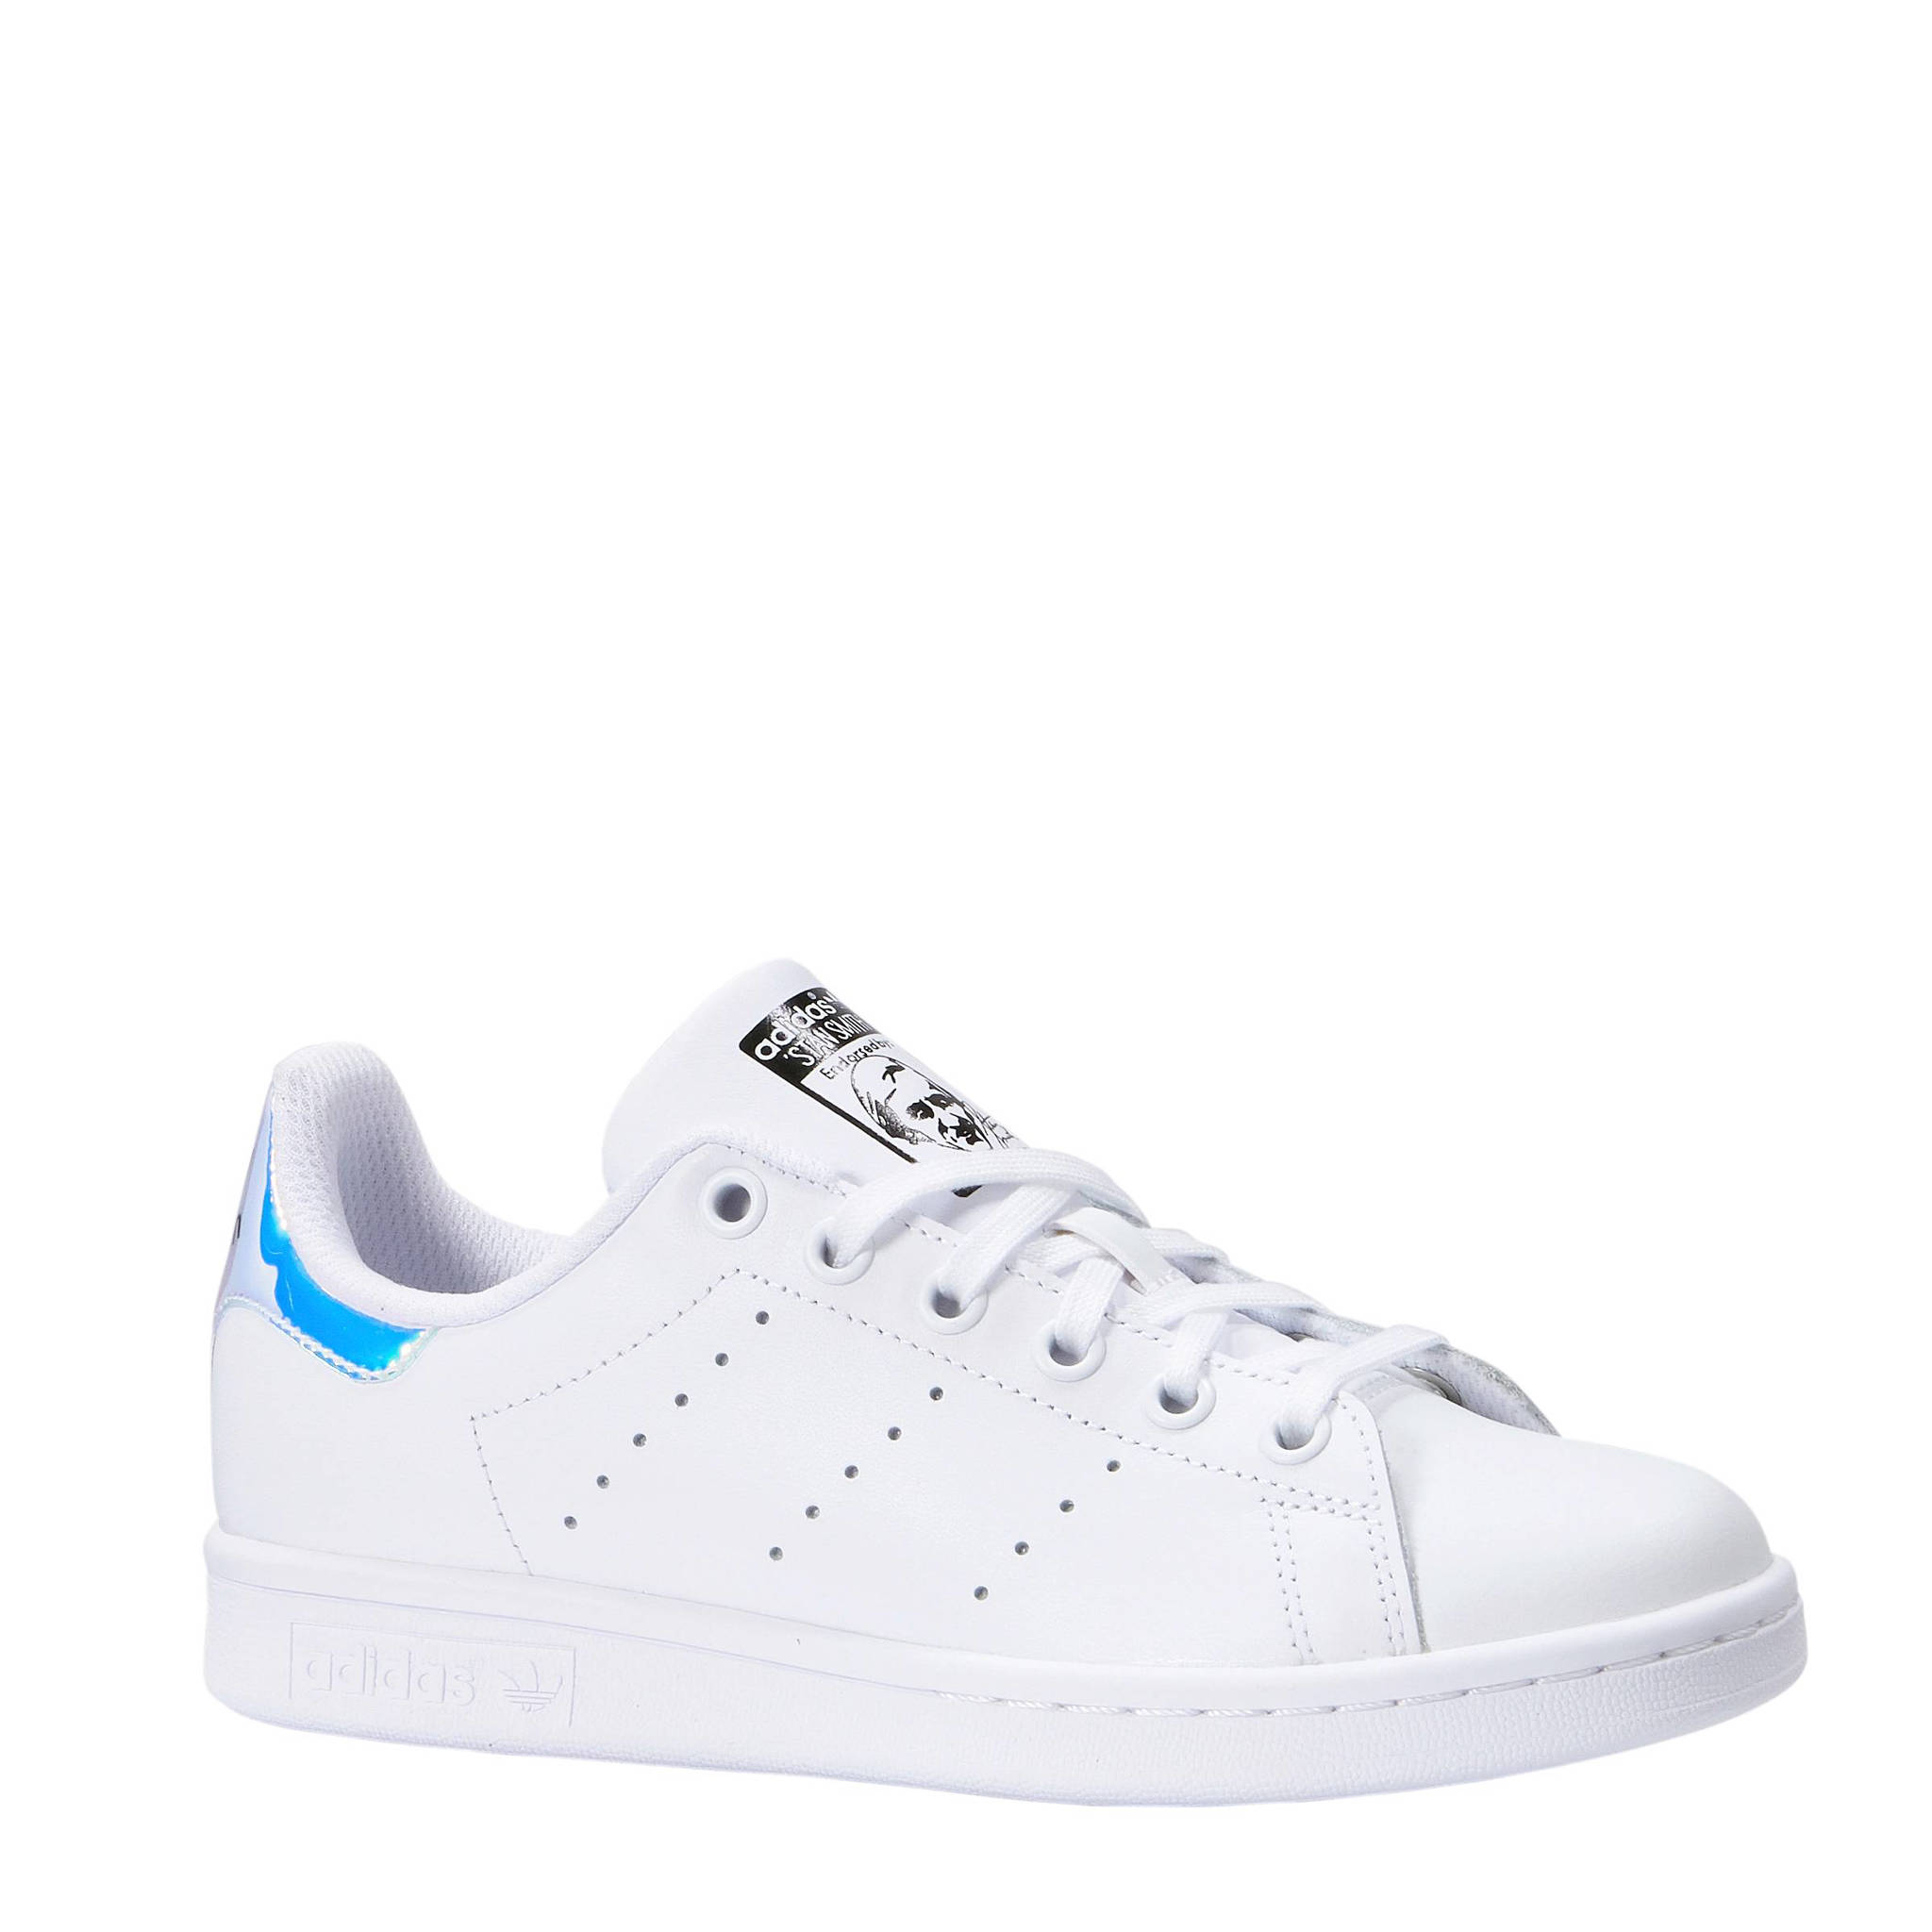 premium selection 7acb9 820f8 Stan Smith sneakers